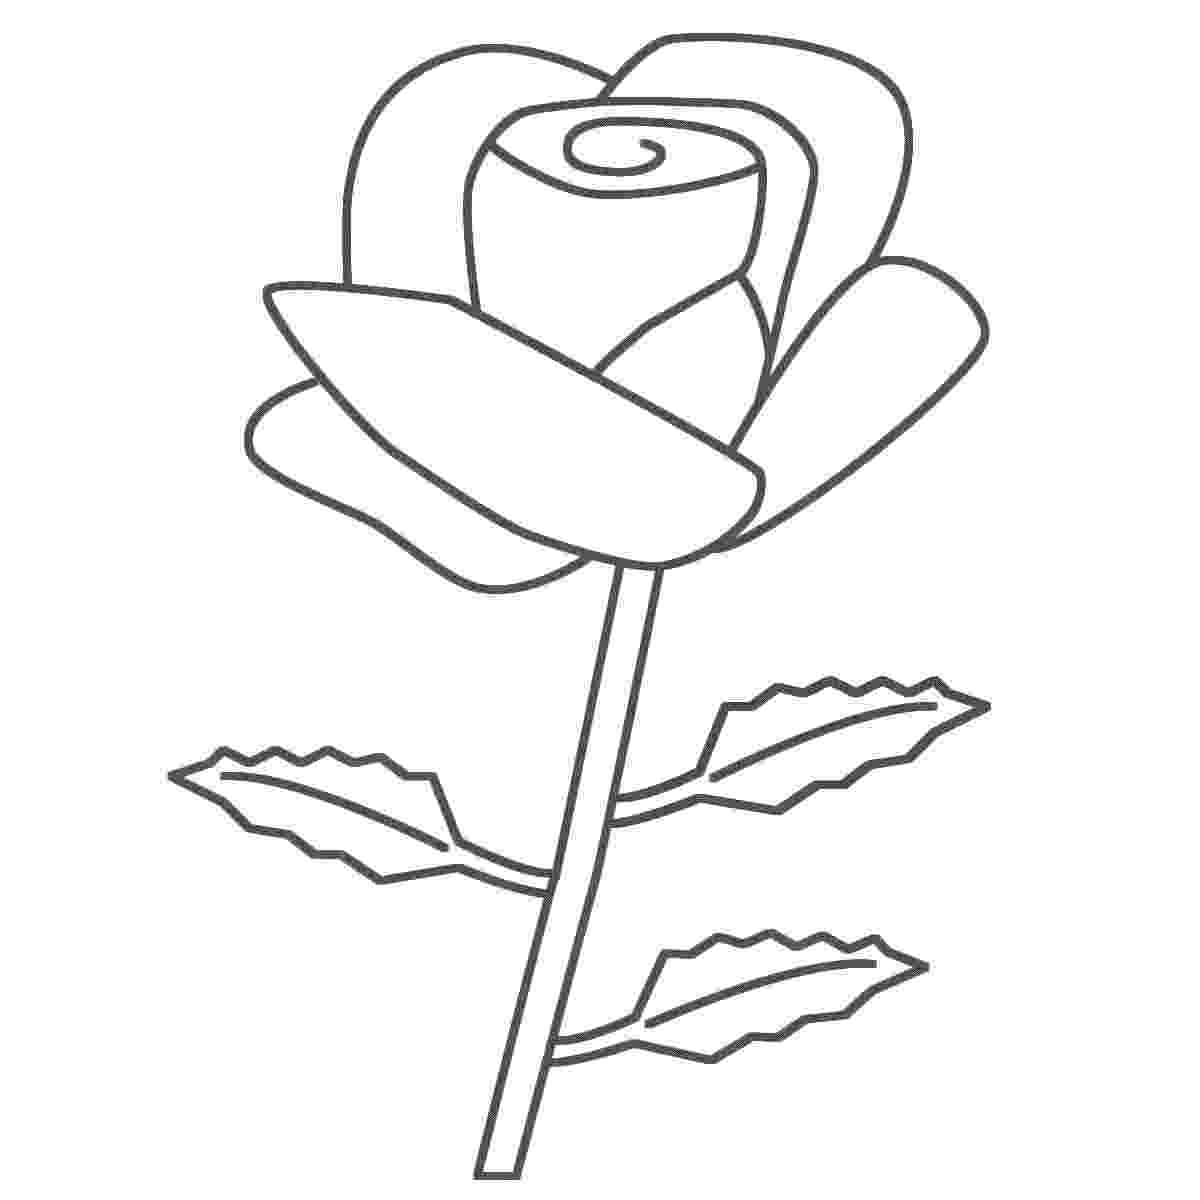 rose flower coloring page top 10 rose coloring pages that are beyond beautiful rose flower coloring page